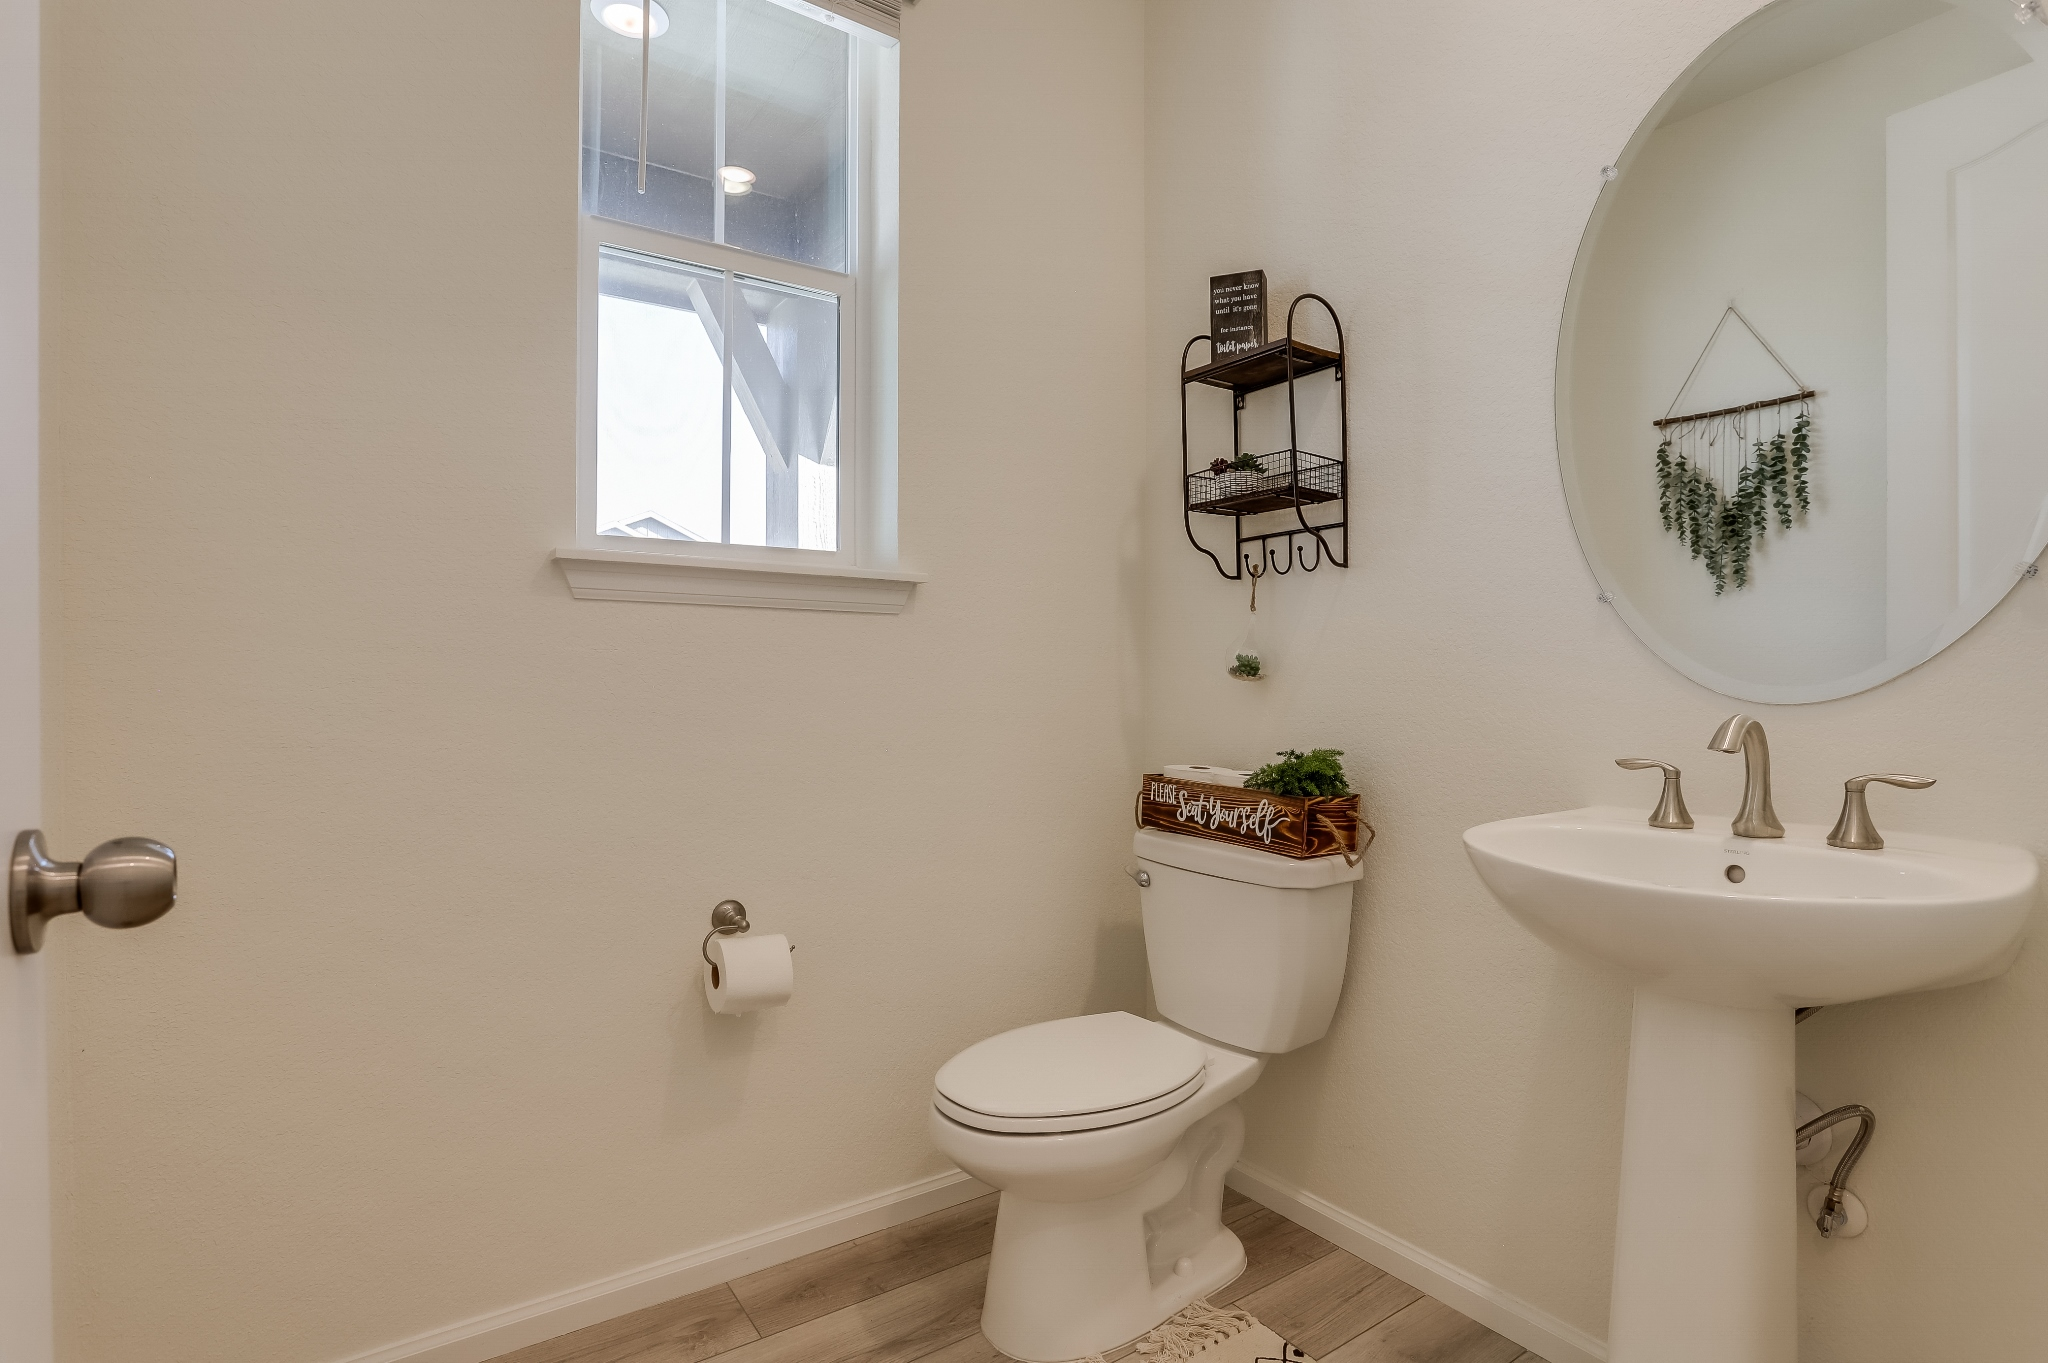 REAL ESTATE LISTING: 12813 Clearview St Firestone Powder Room